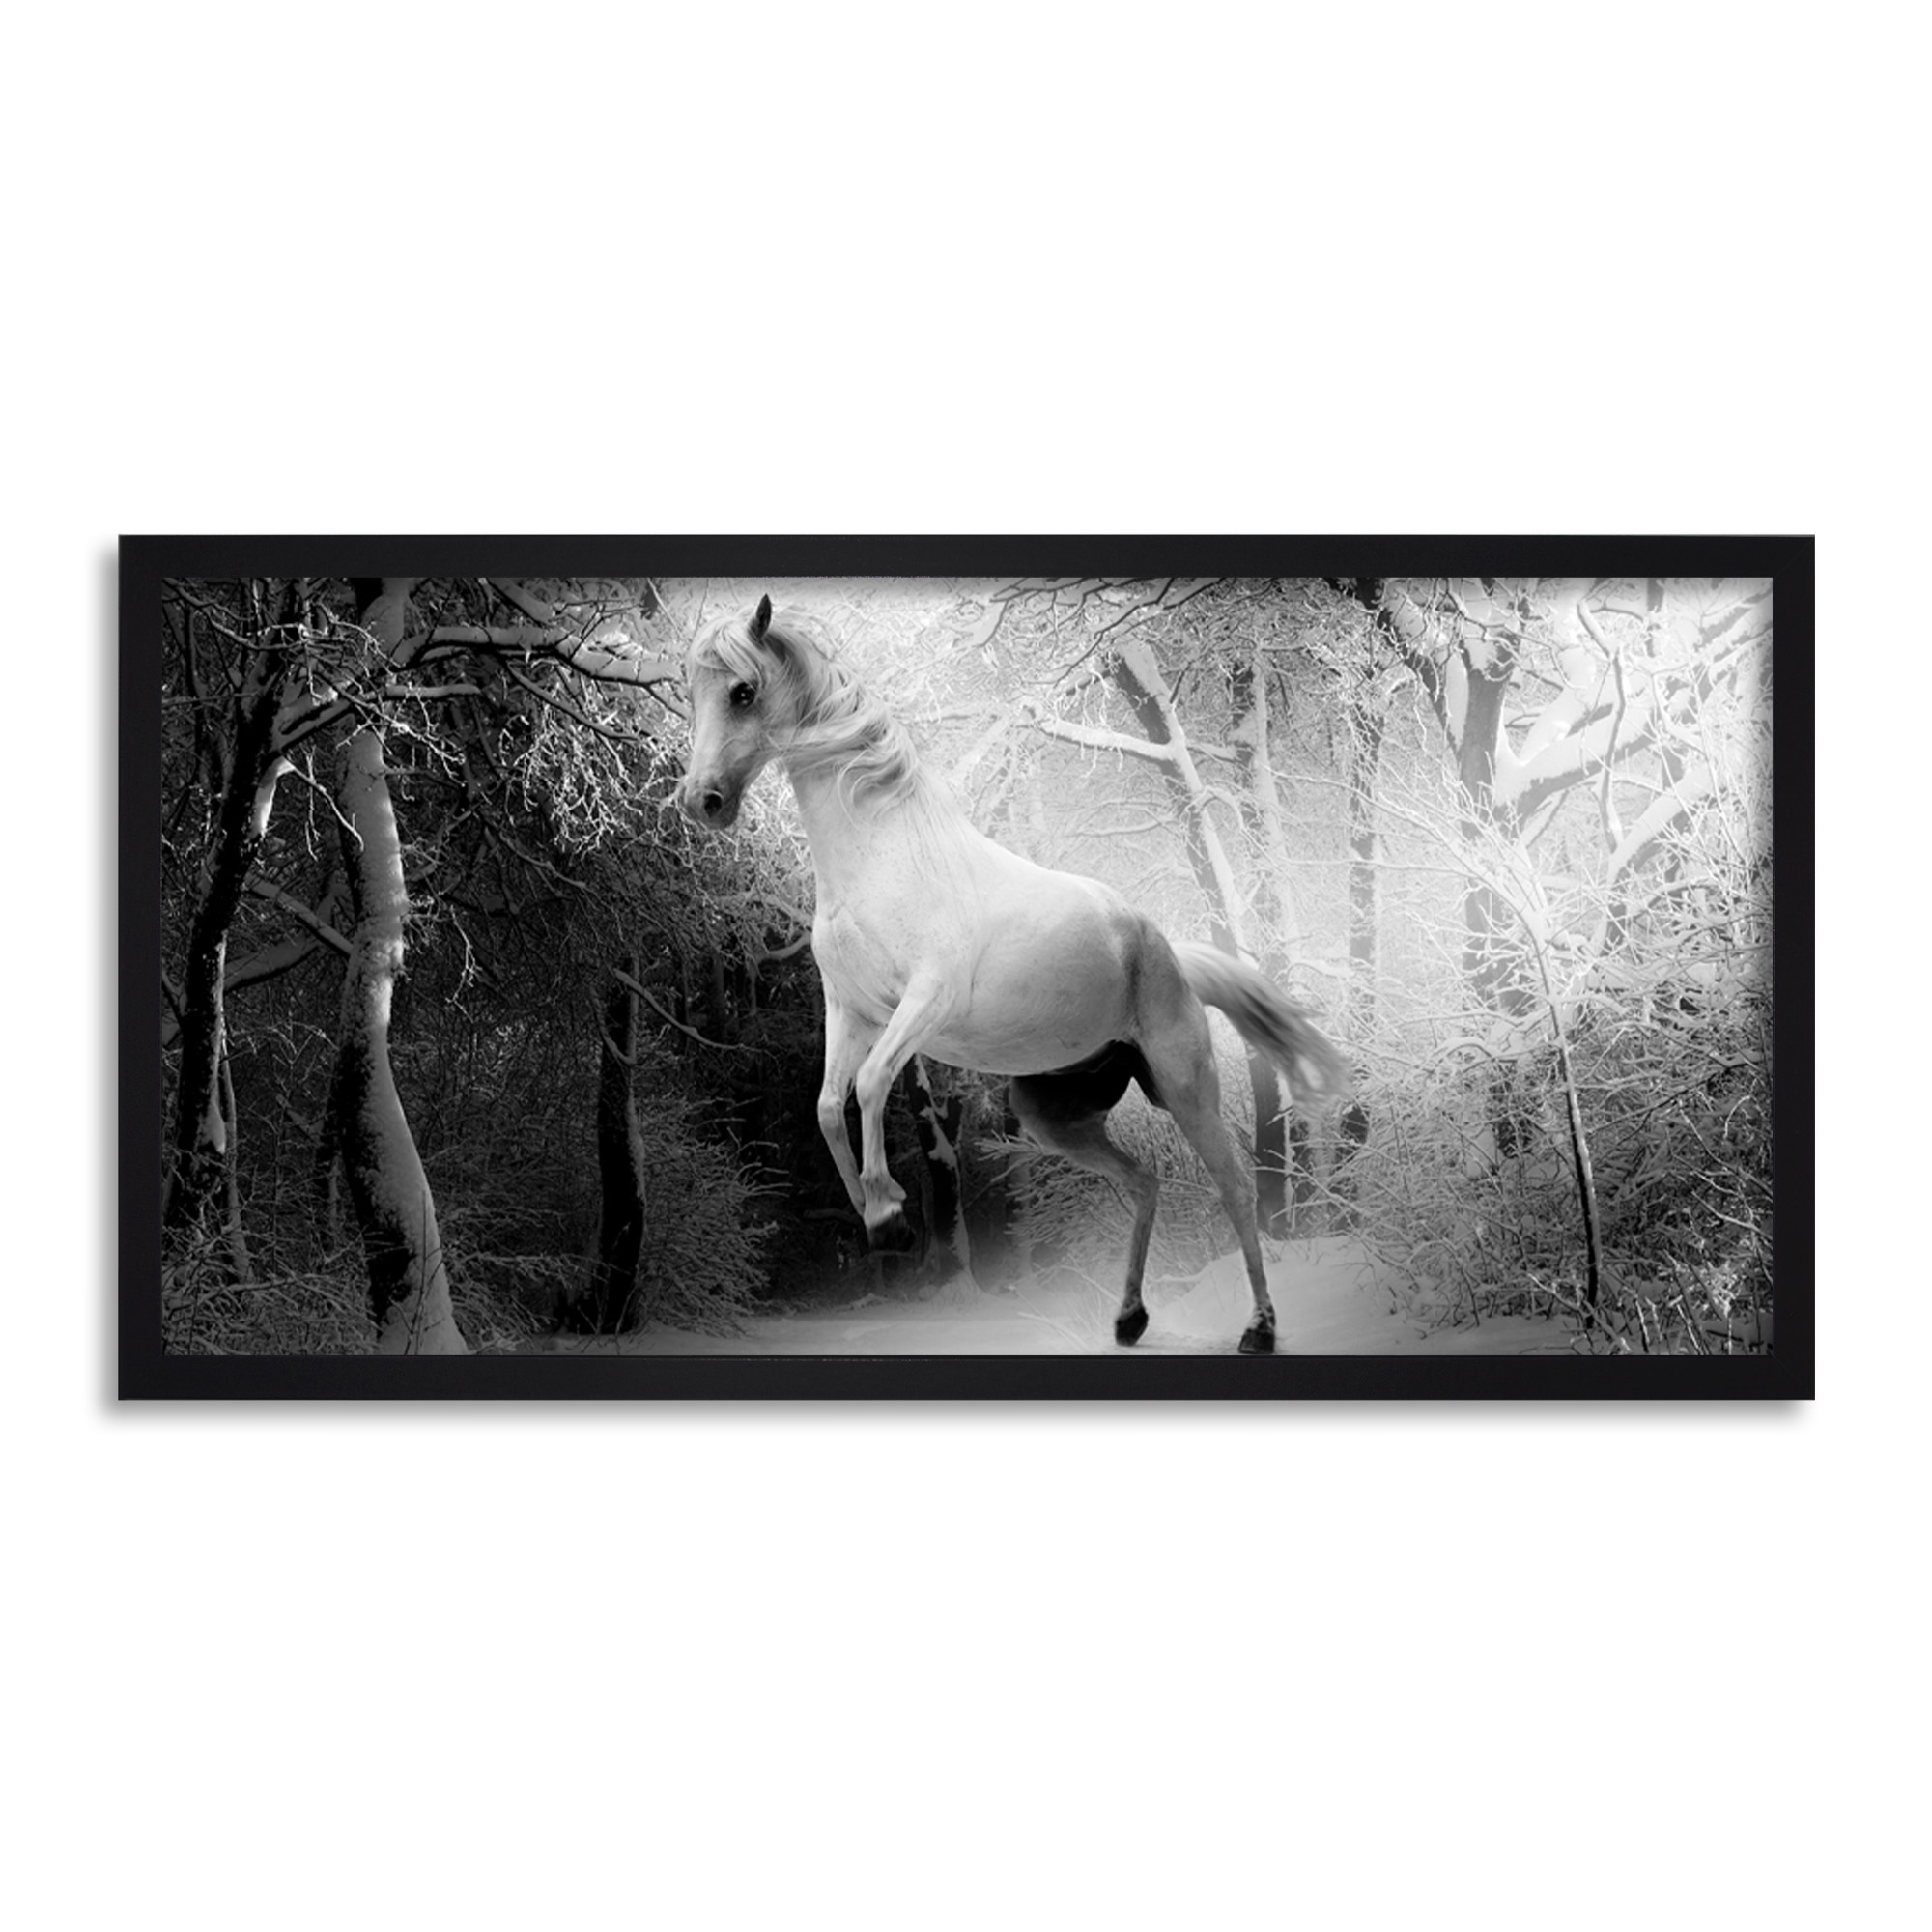 White Horse Rearing Forest Long Panel Framed Wall Art Print | eBay